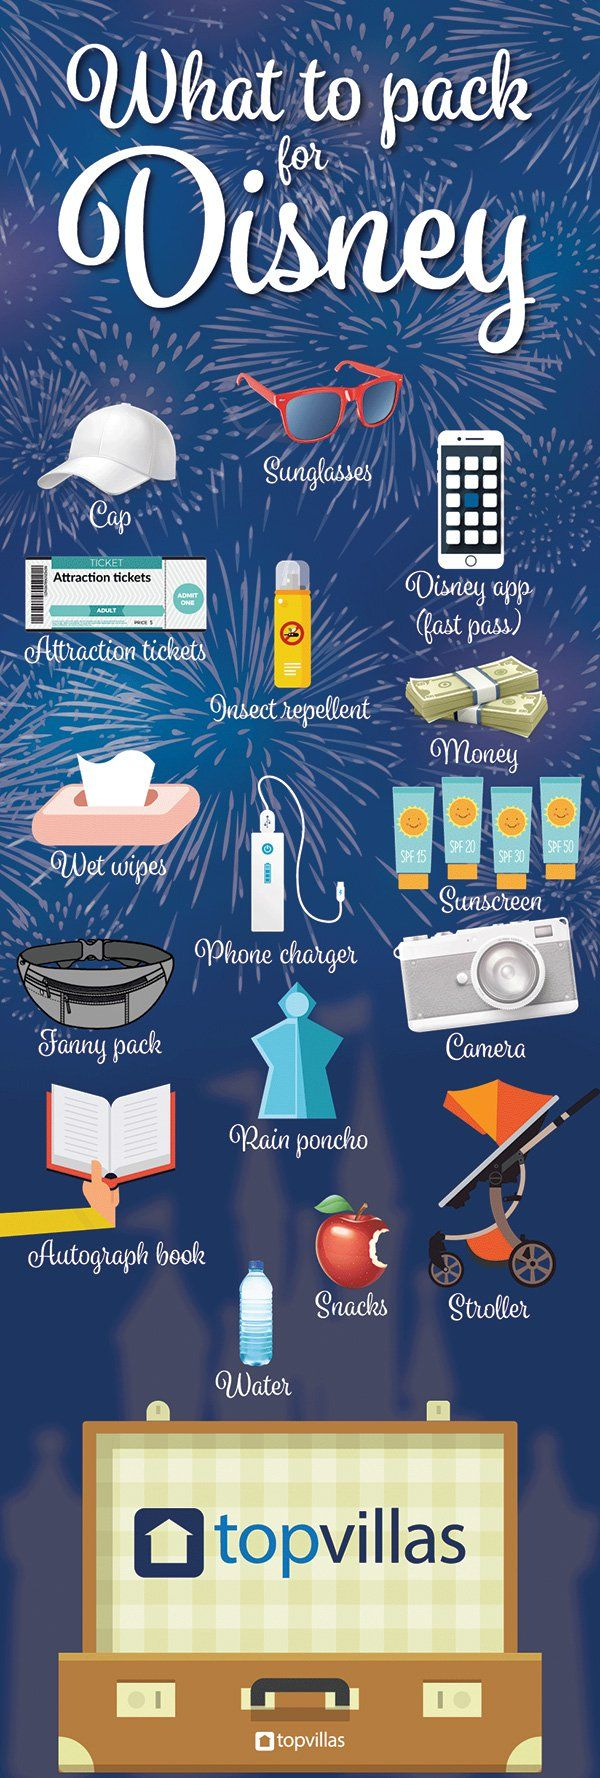 Planning a trip to Disney? Make sure you read our guide, which will help you decide what to pack!